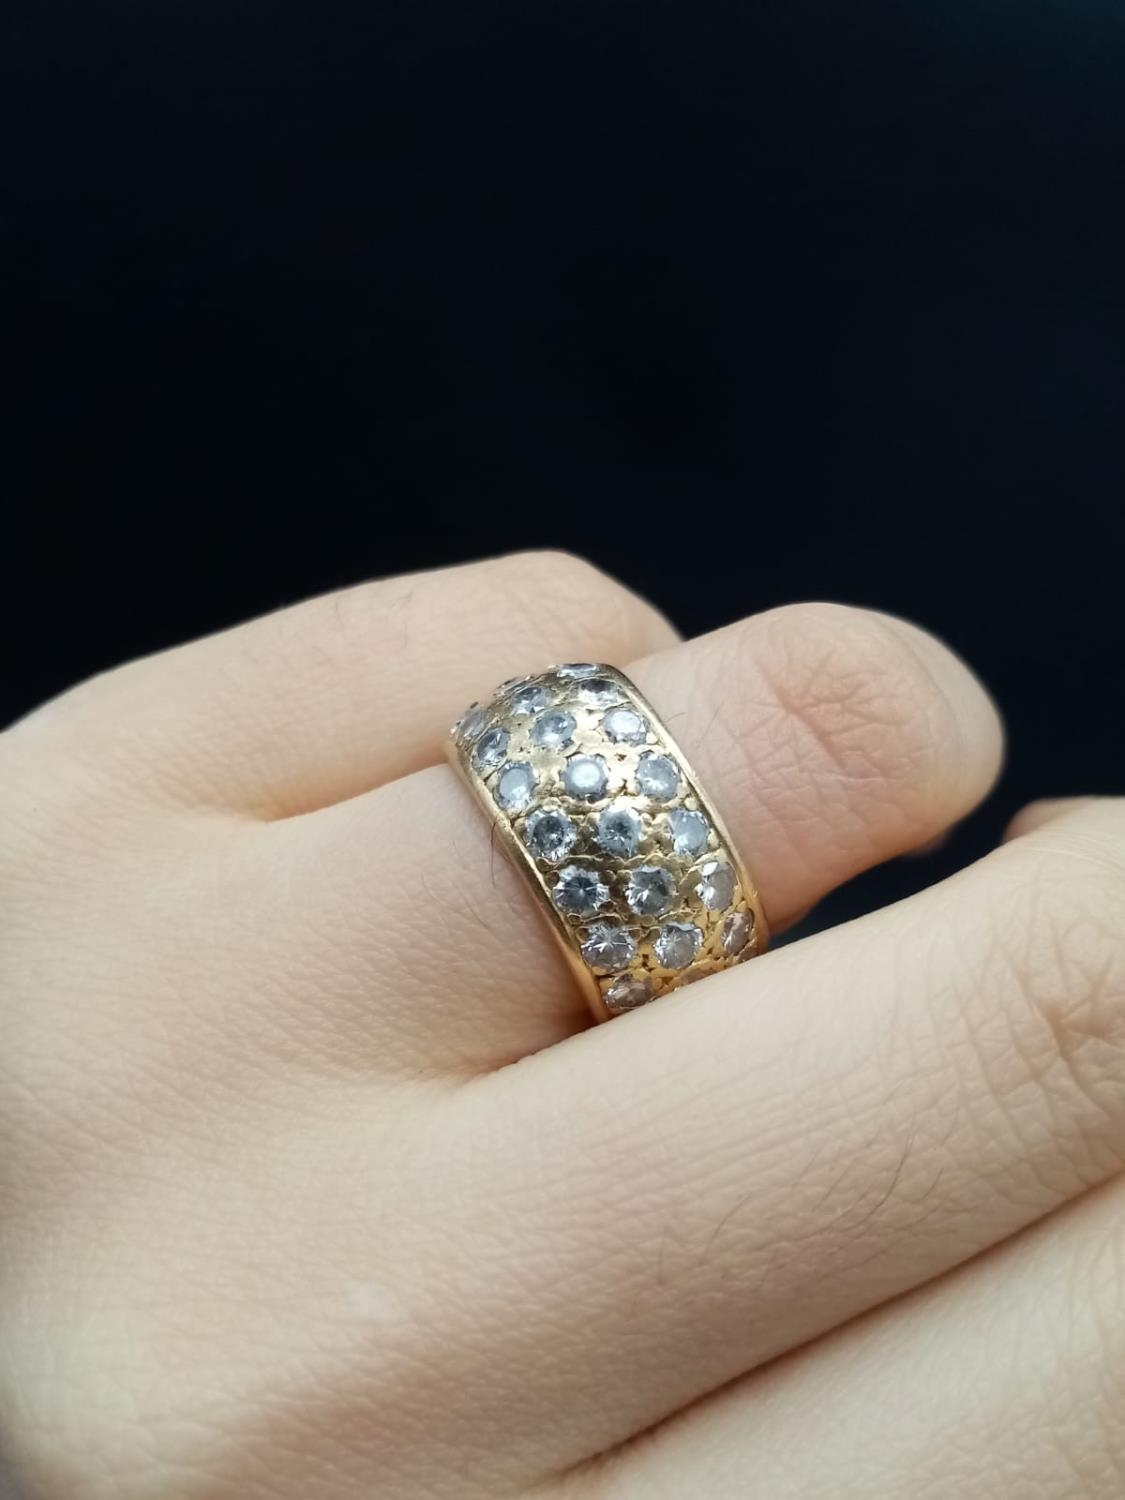 AN 18K ROSE GOLD BAND RING ENCRUSTED WITH DIAMOND STONES (APPROX 4CT) 10.3gms size k/l - Image 5 of 7